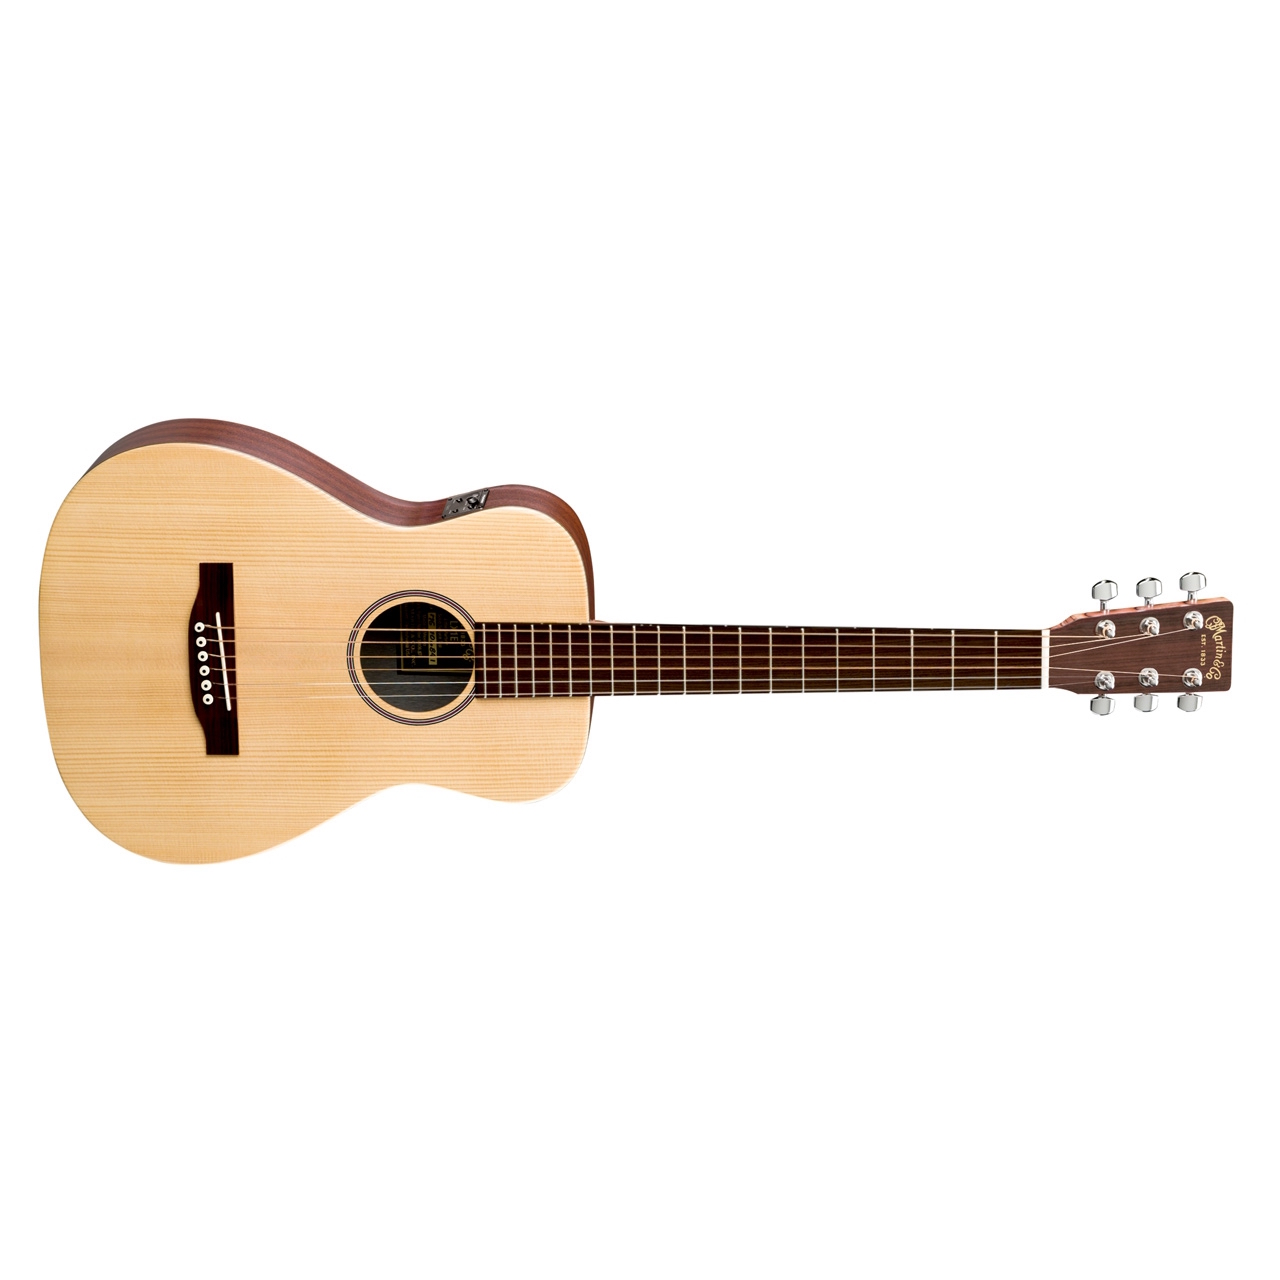 Martin LX1E Electro Acoustic Guitar in Natural